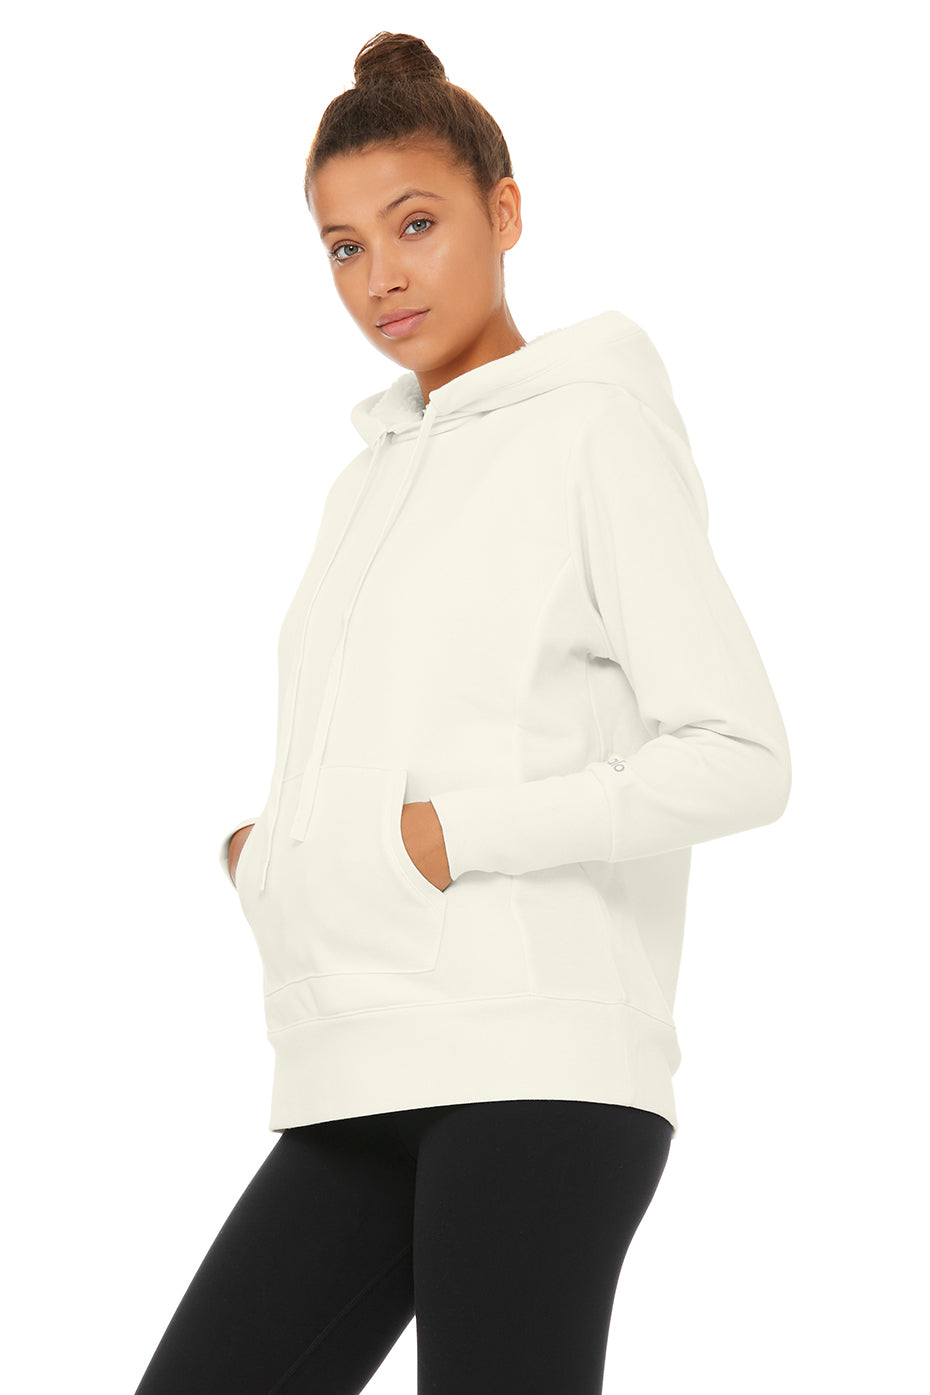 Heat-Up Long Sleeve Top